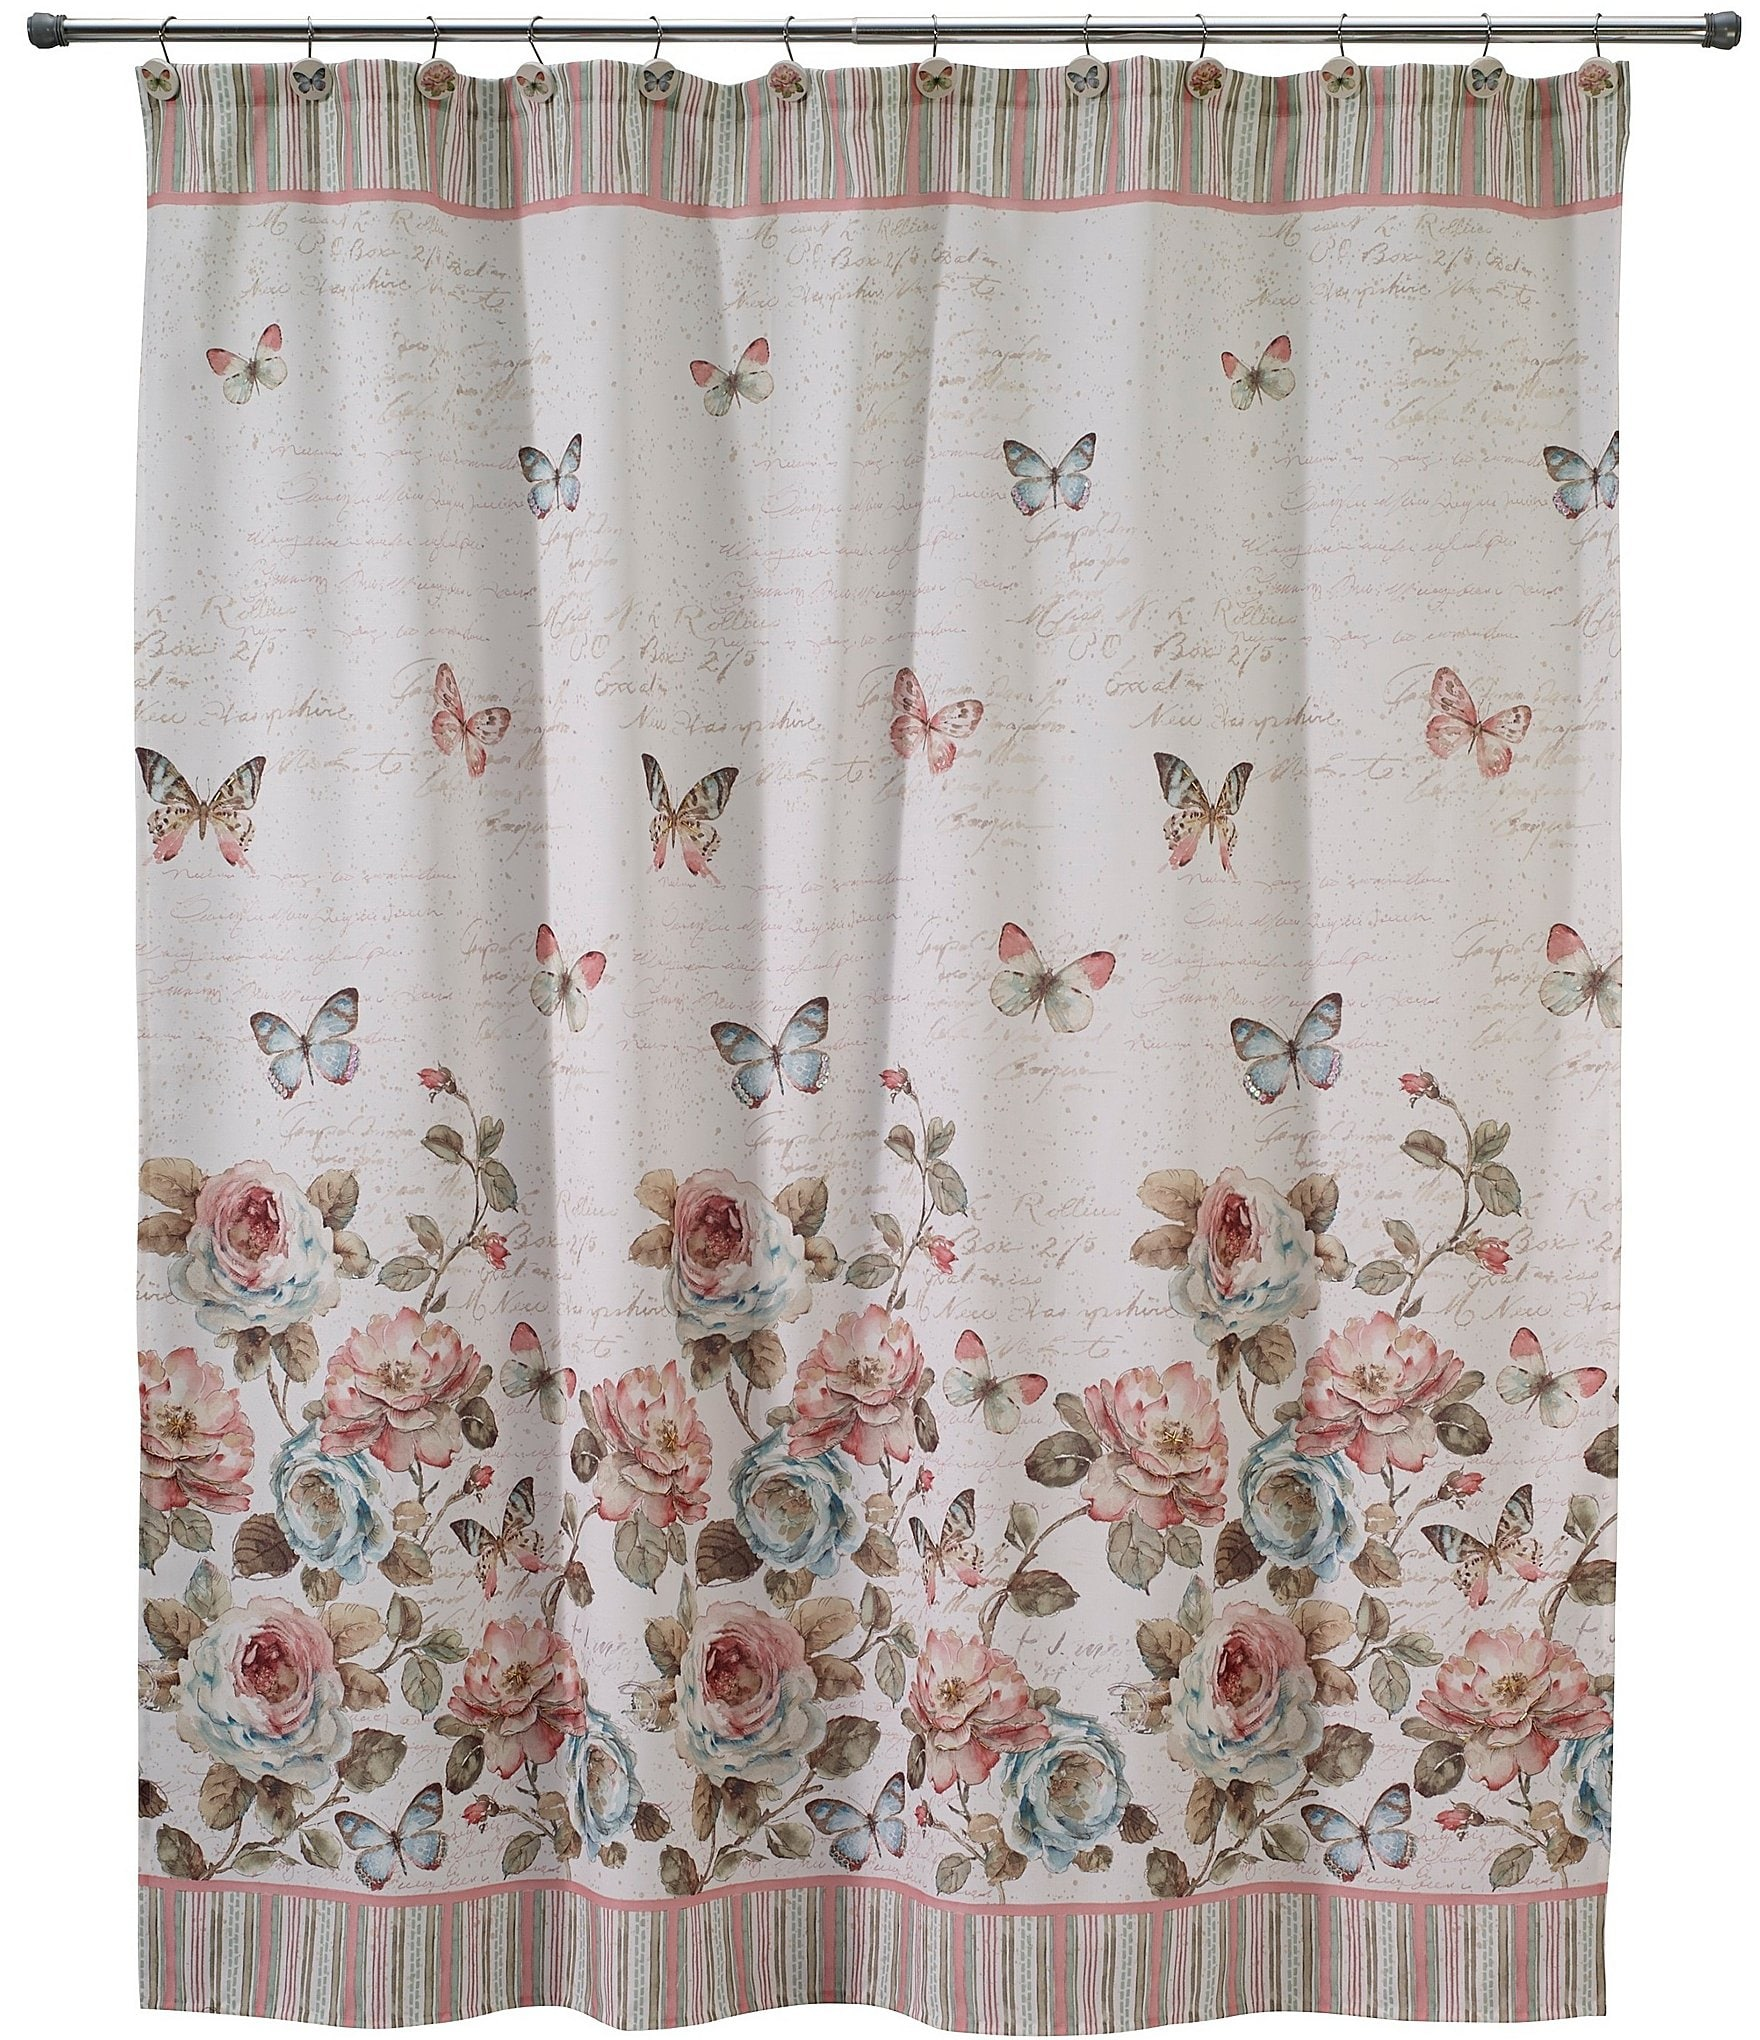 Avanti Linens Butterfly Garden Shower Curtain Dillards